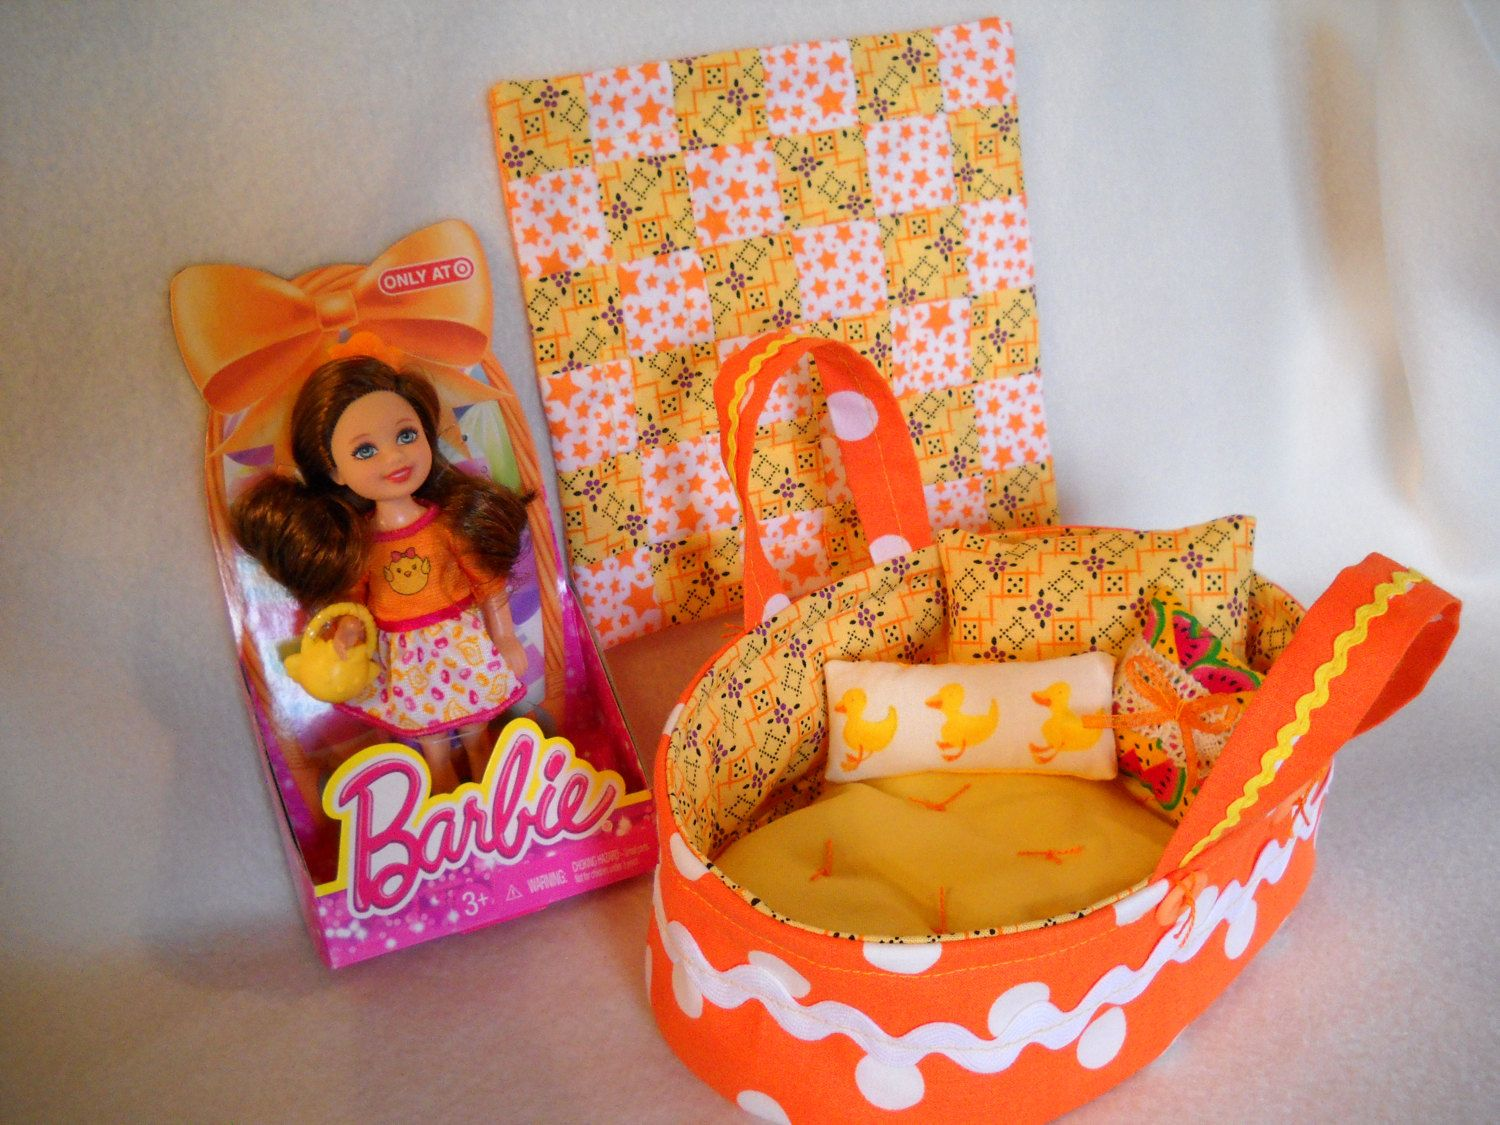 Kelly doll barbie doll toy mattel doll bed miniature quilt handmade kelly doll barbie doll toy mattel doll bed miniature quilt handmade girl easter grandma gift girls negle Image collections